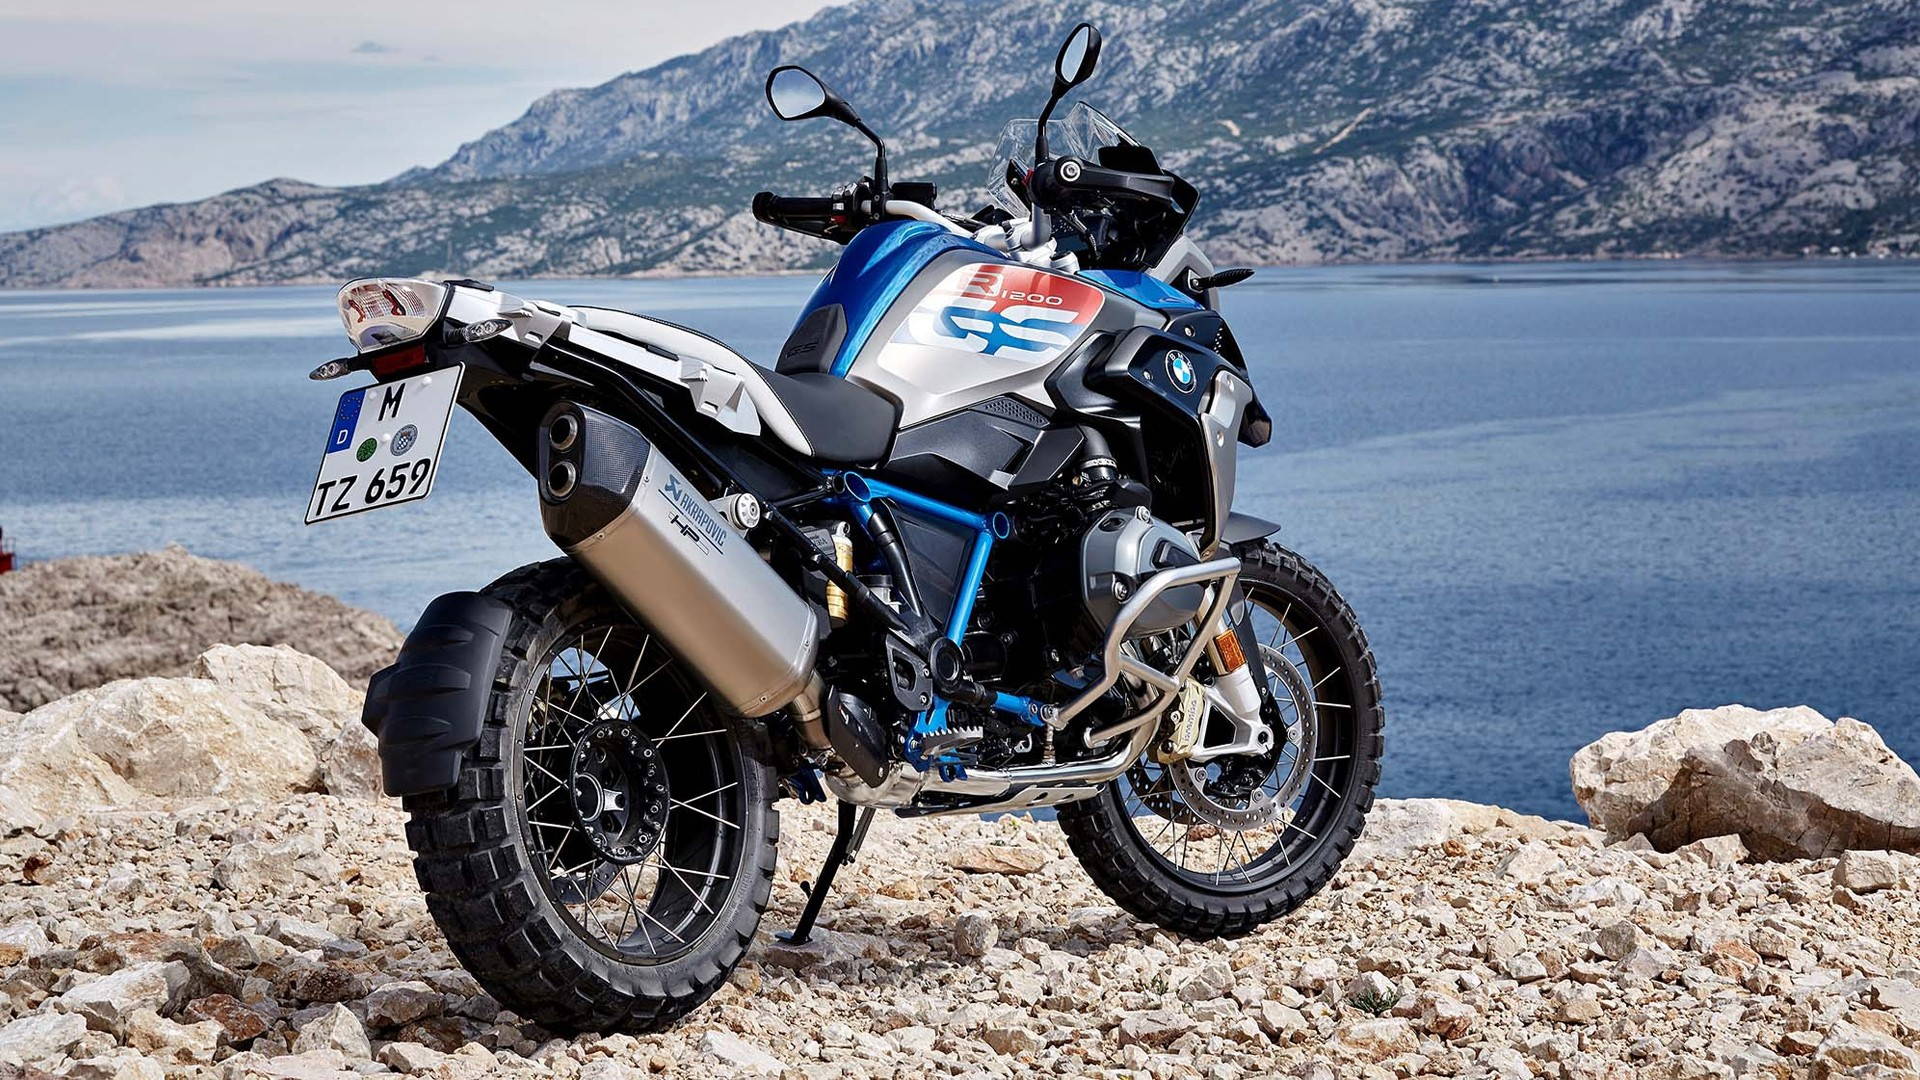 bmw r1200gs wallpaper background